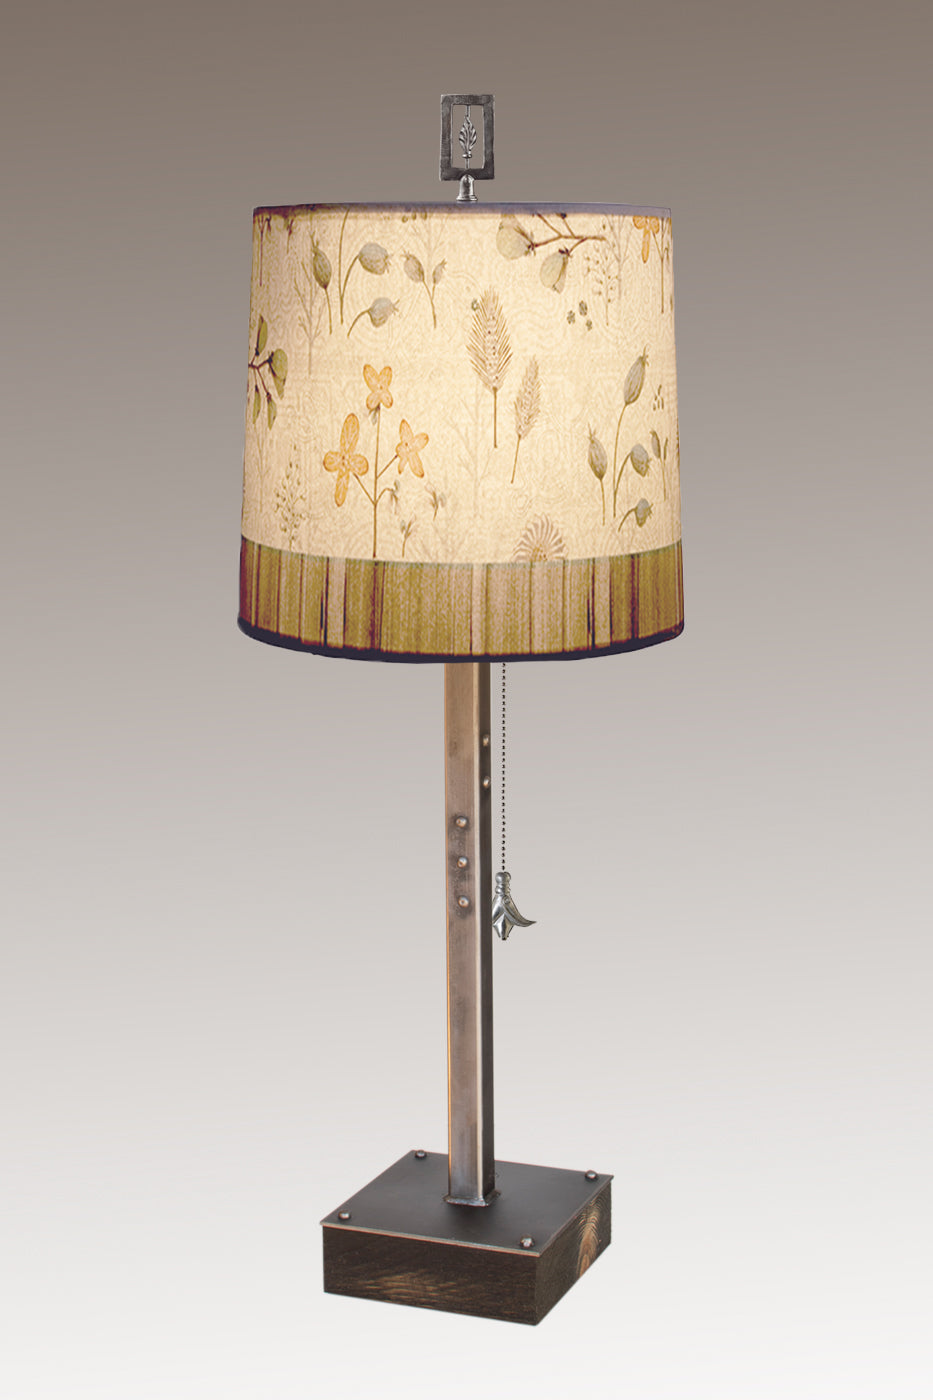 Steel Table Lamp on Wood with Medium Drum Shade in Flora & Maze